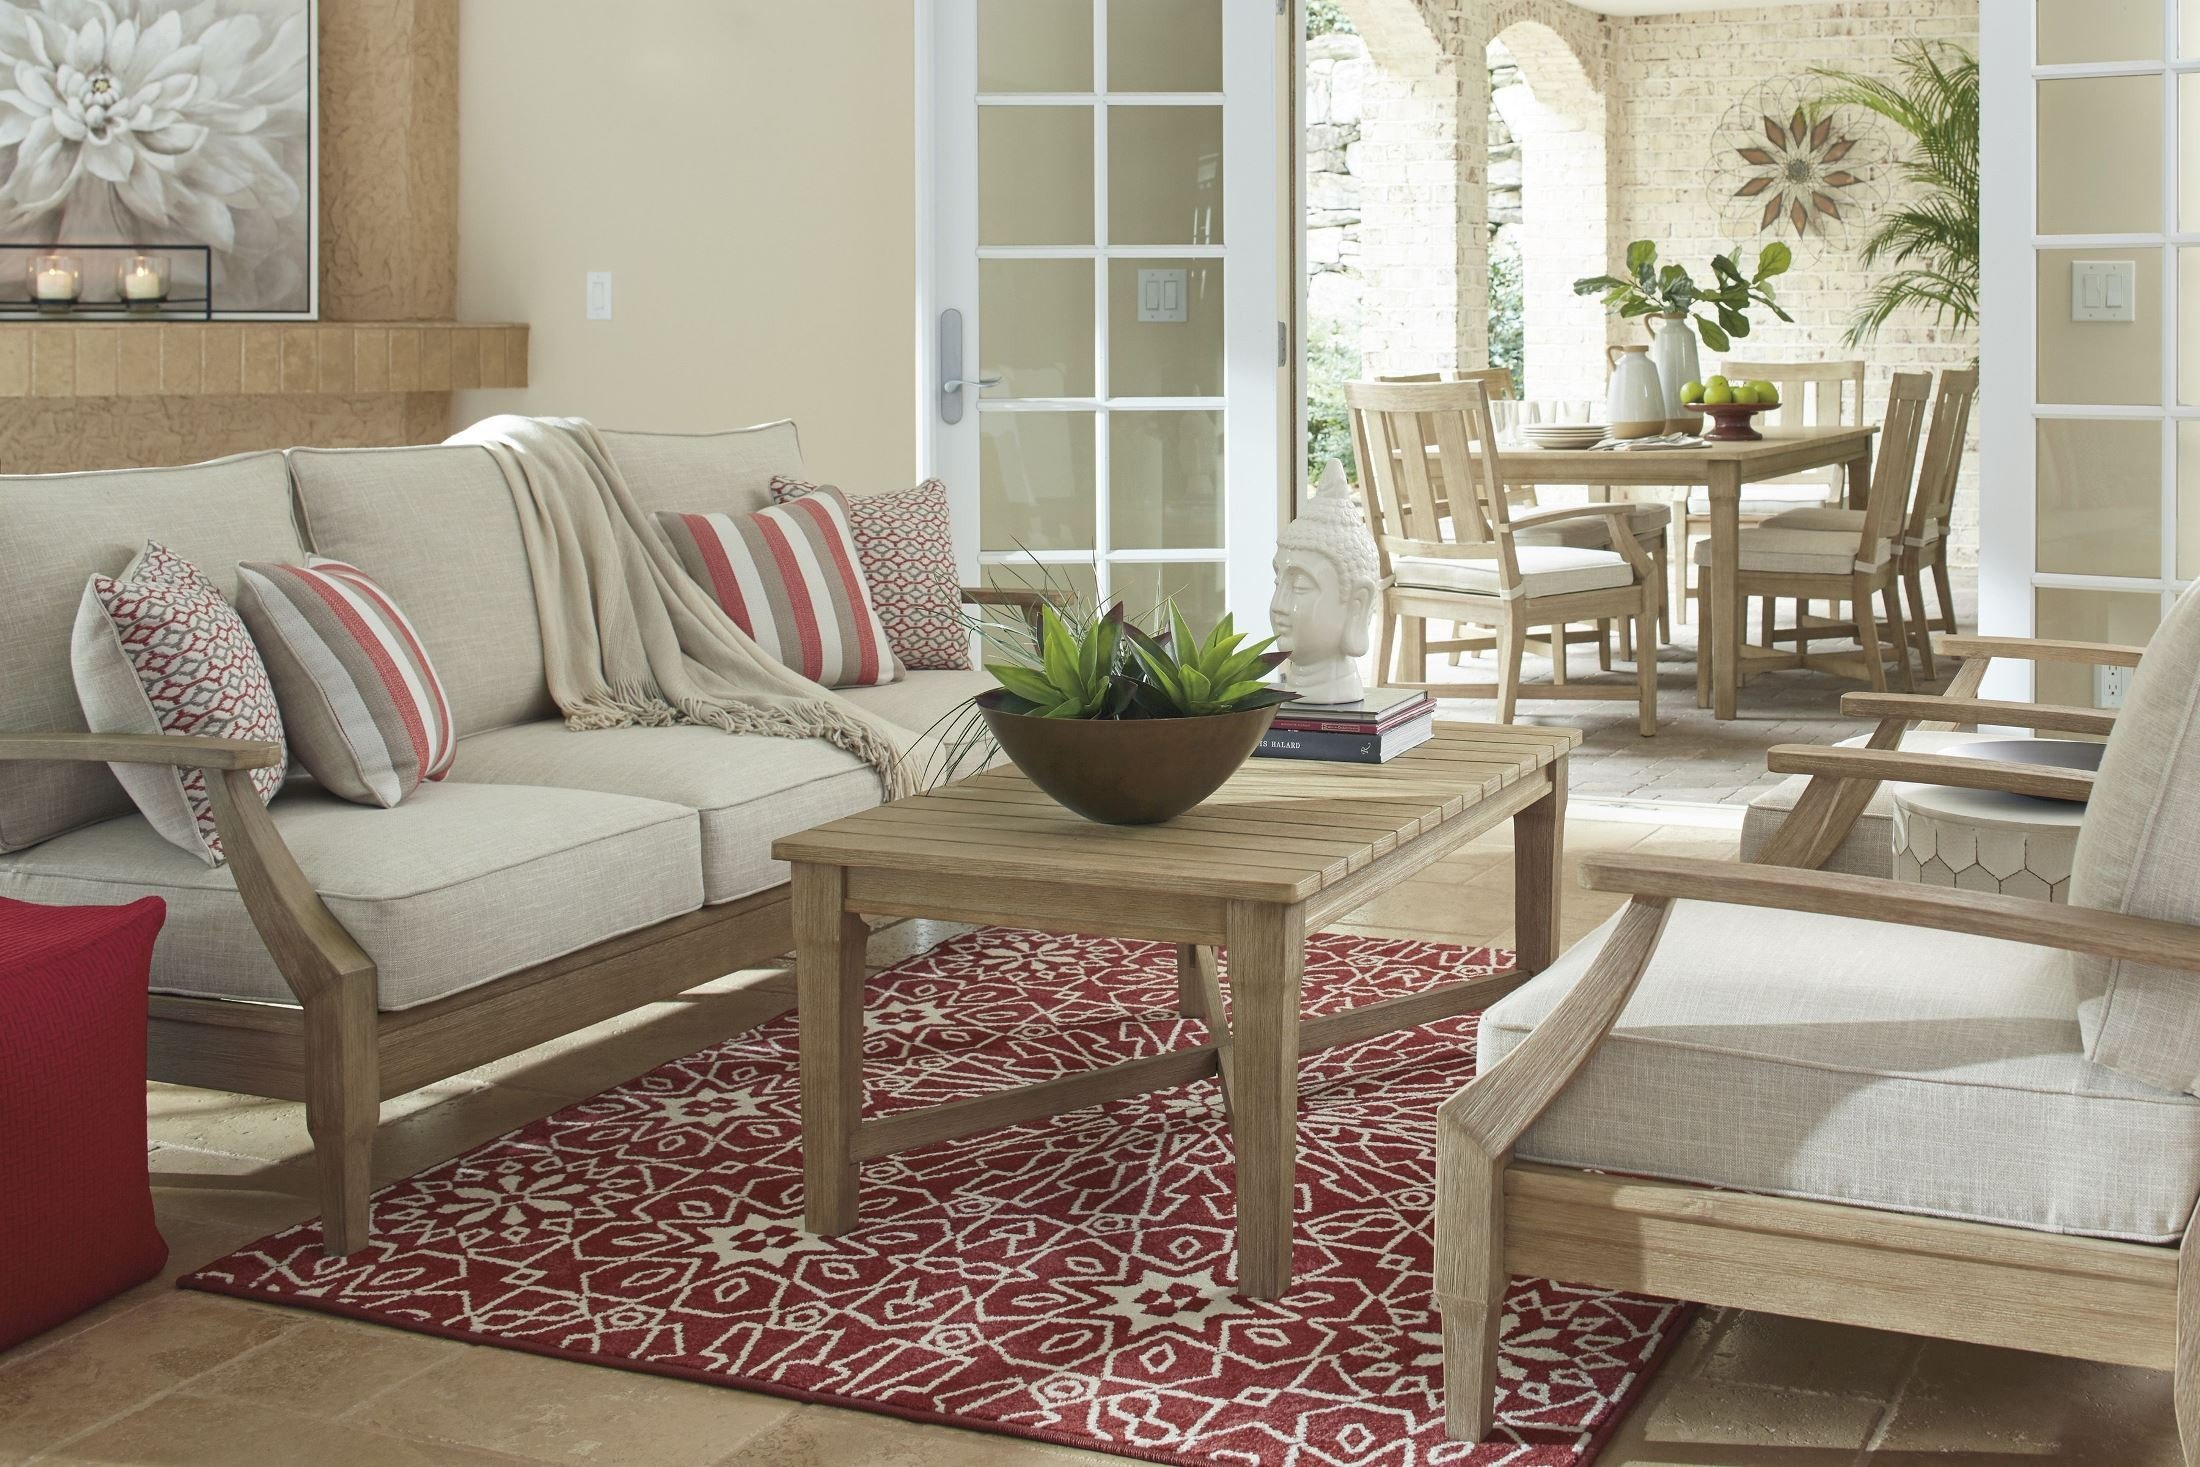 Clare View Beige Outdoor Living Room Set with Cushion ... on Outdoor Living Room Set id=20716